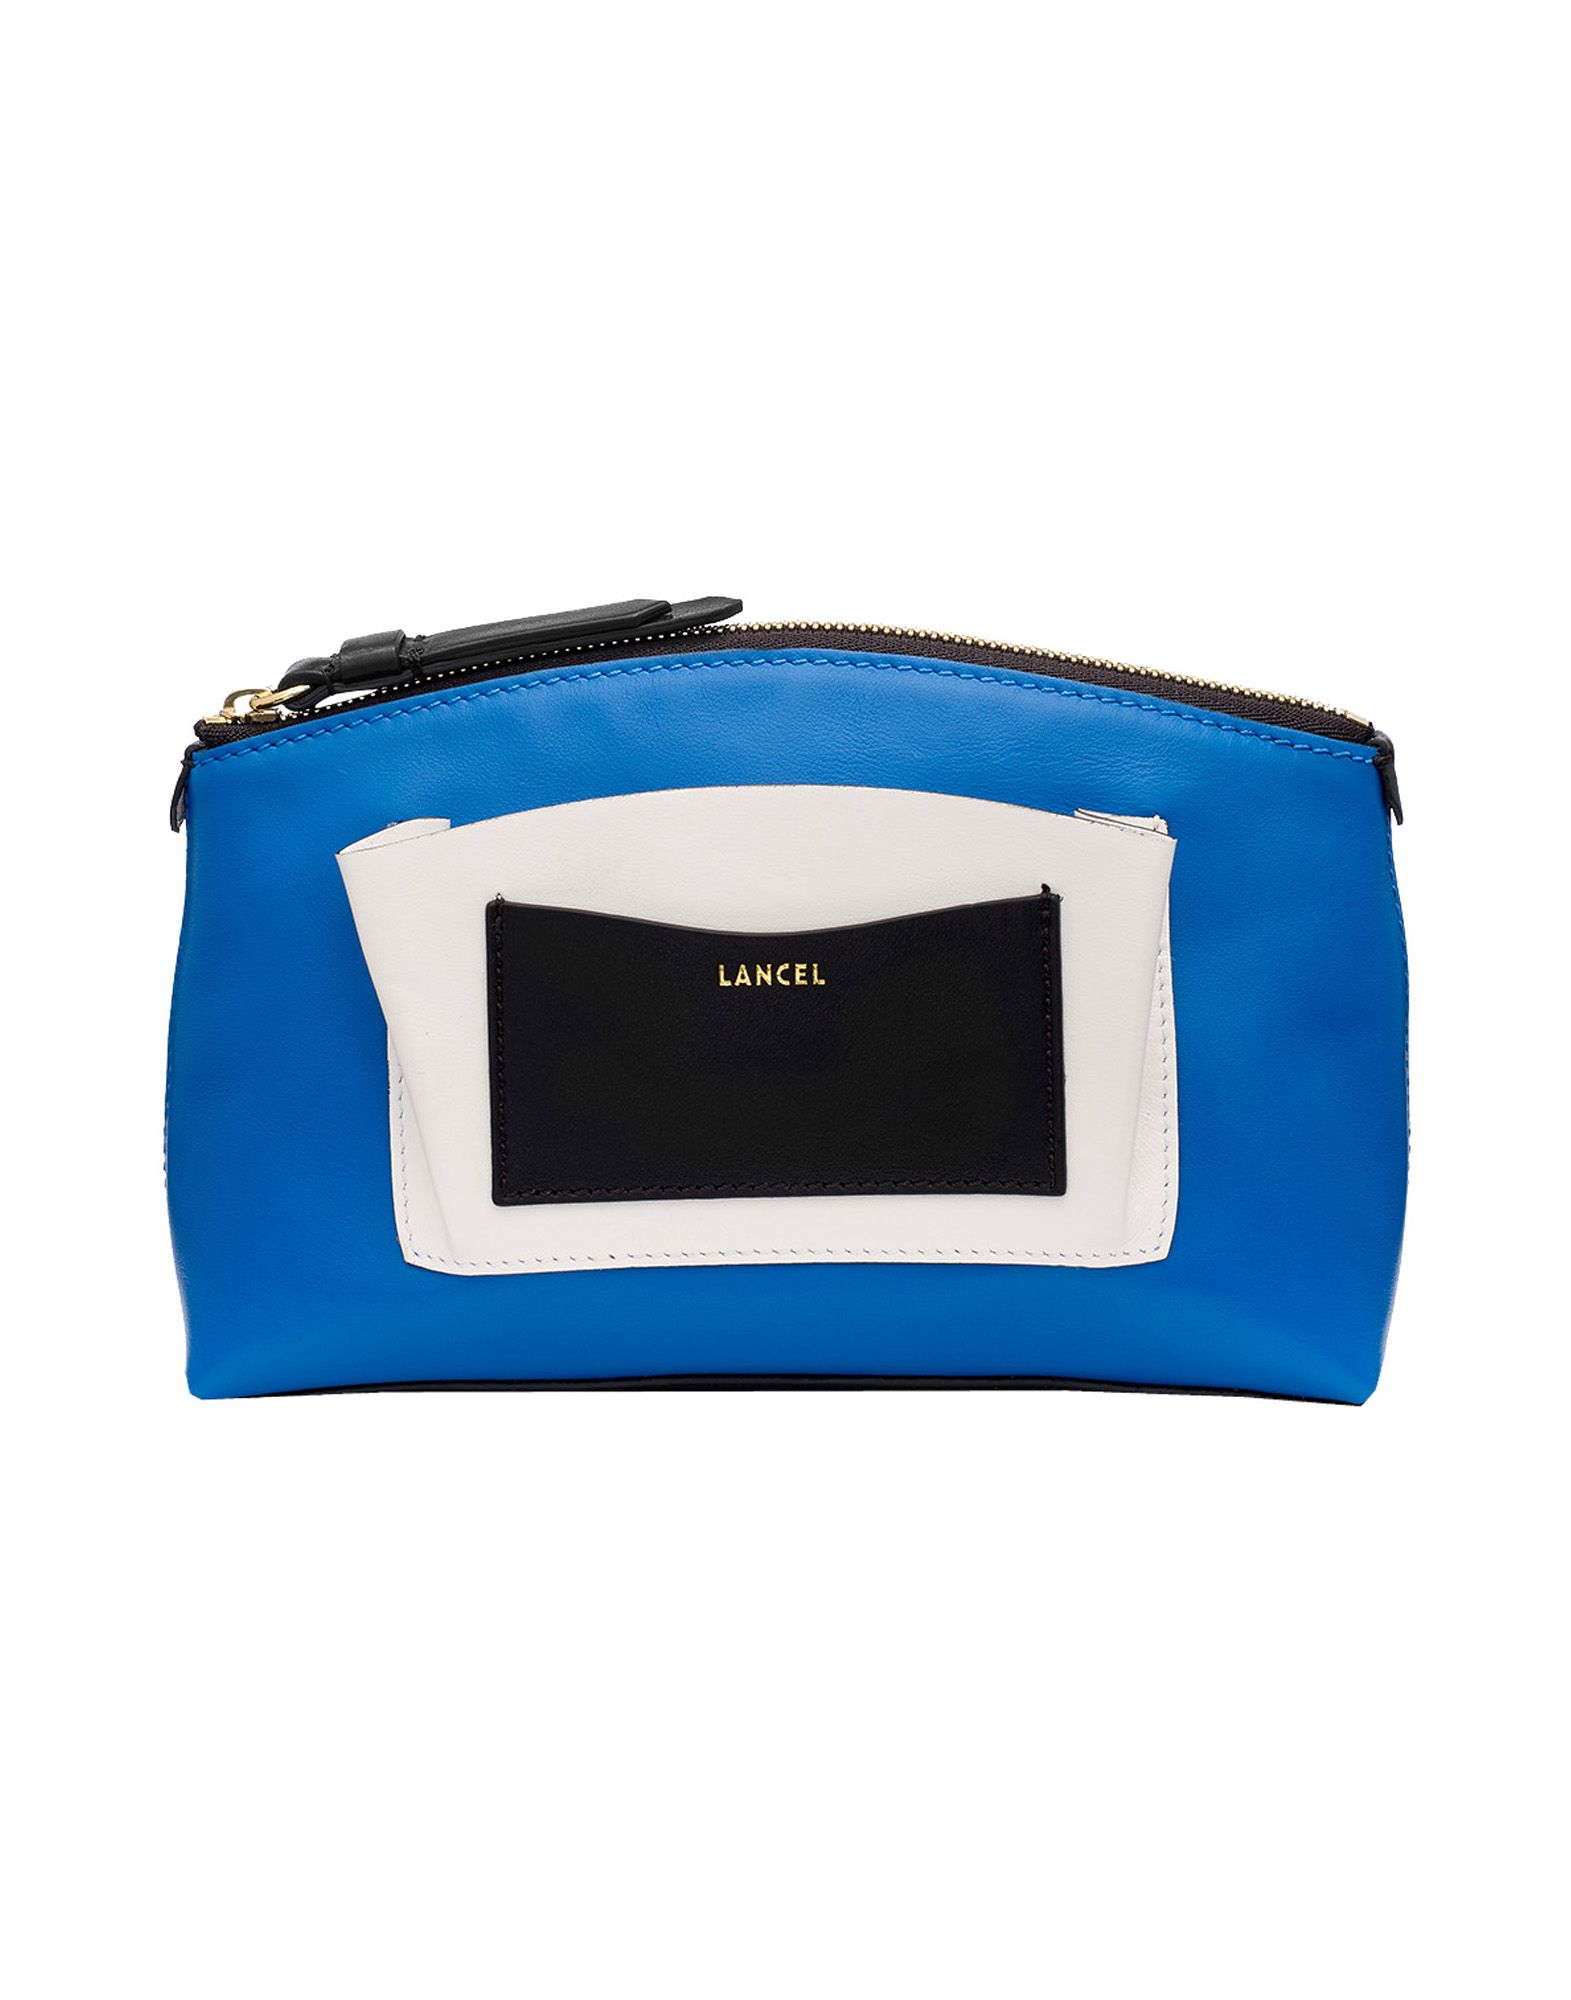 Beauty Case Lancel Bianca Smooth Leather - Donna - Acquista online su